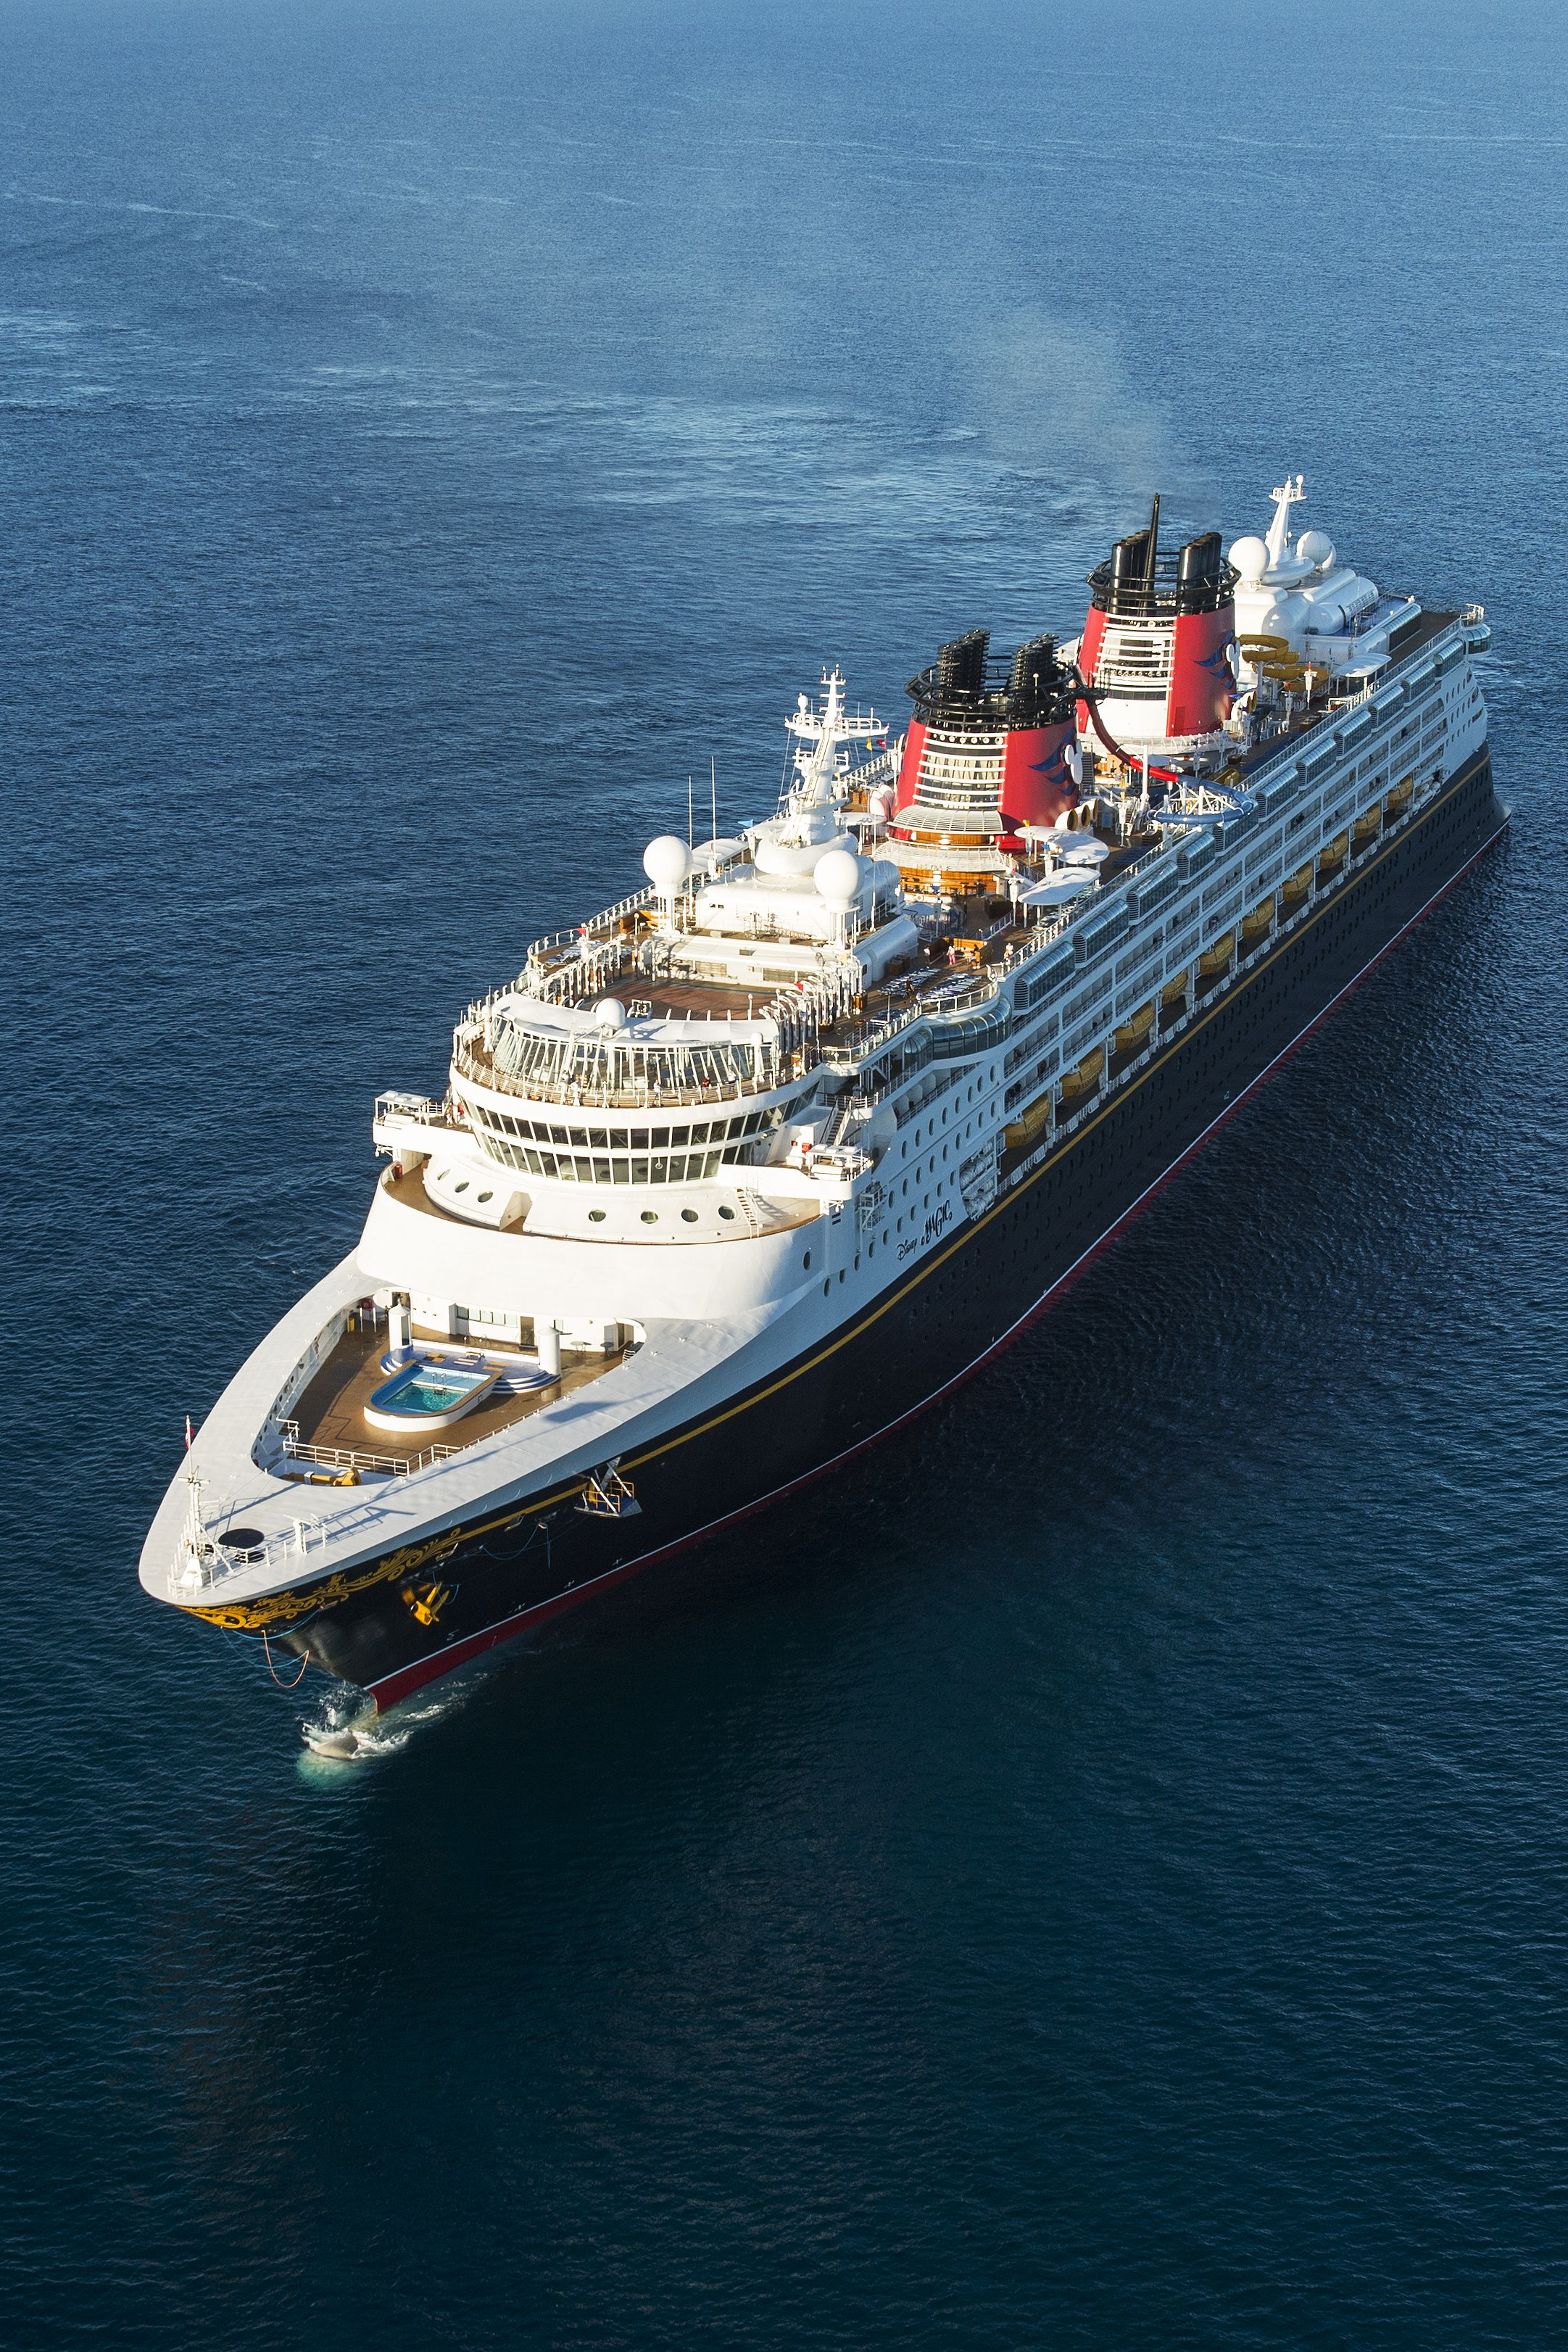 5night Western Europe cruise on the DisneyMagic depart